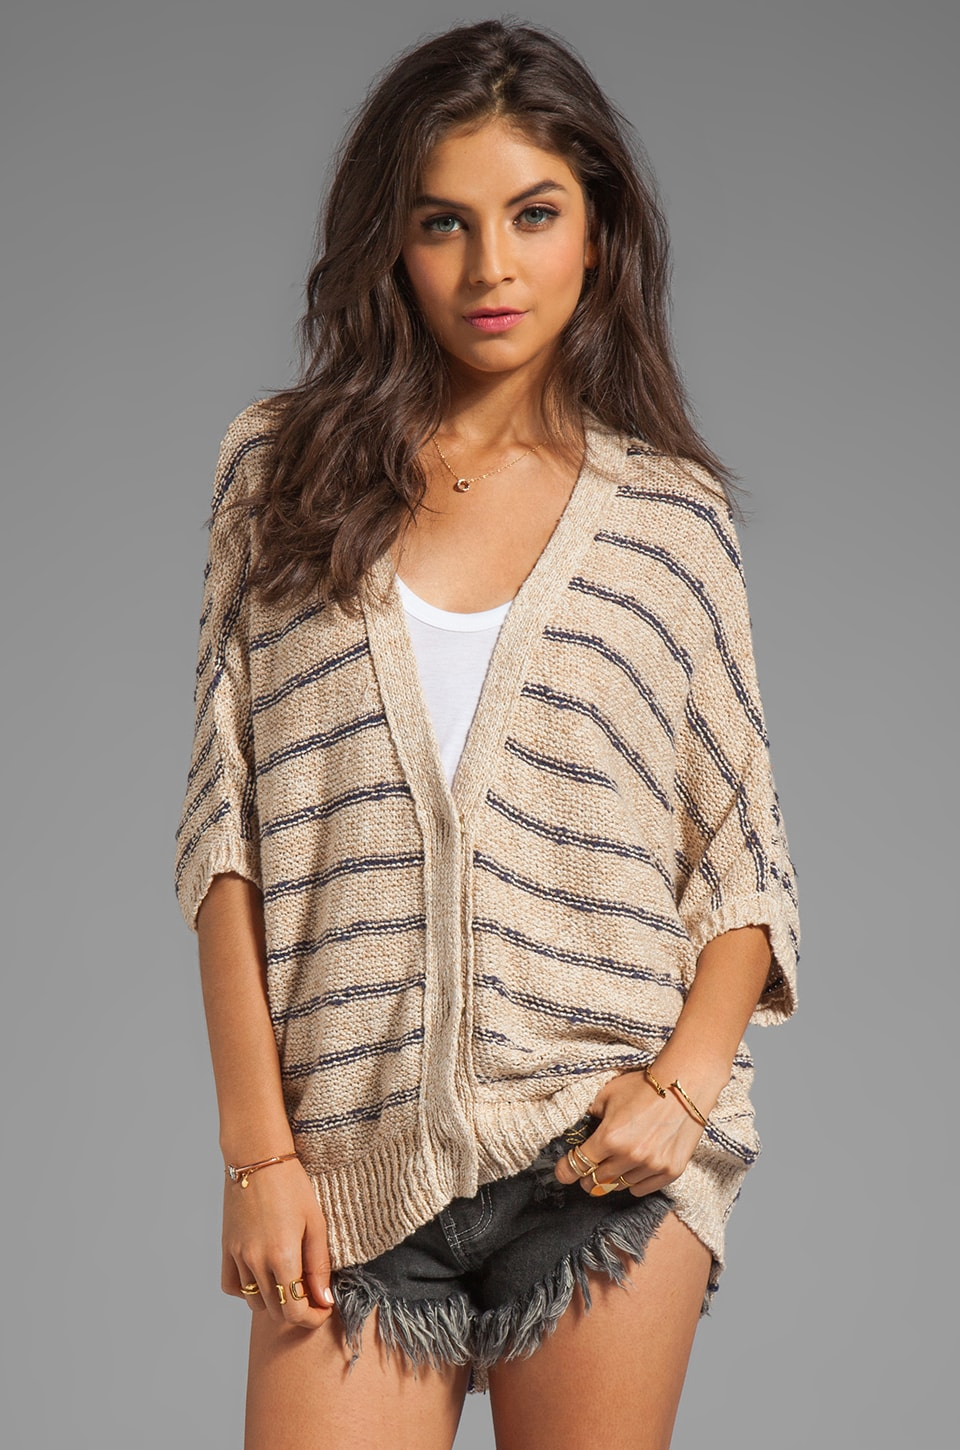 Free People Rabbit in the Moon Cardi in Vanilla Combo